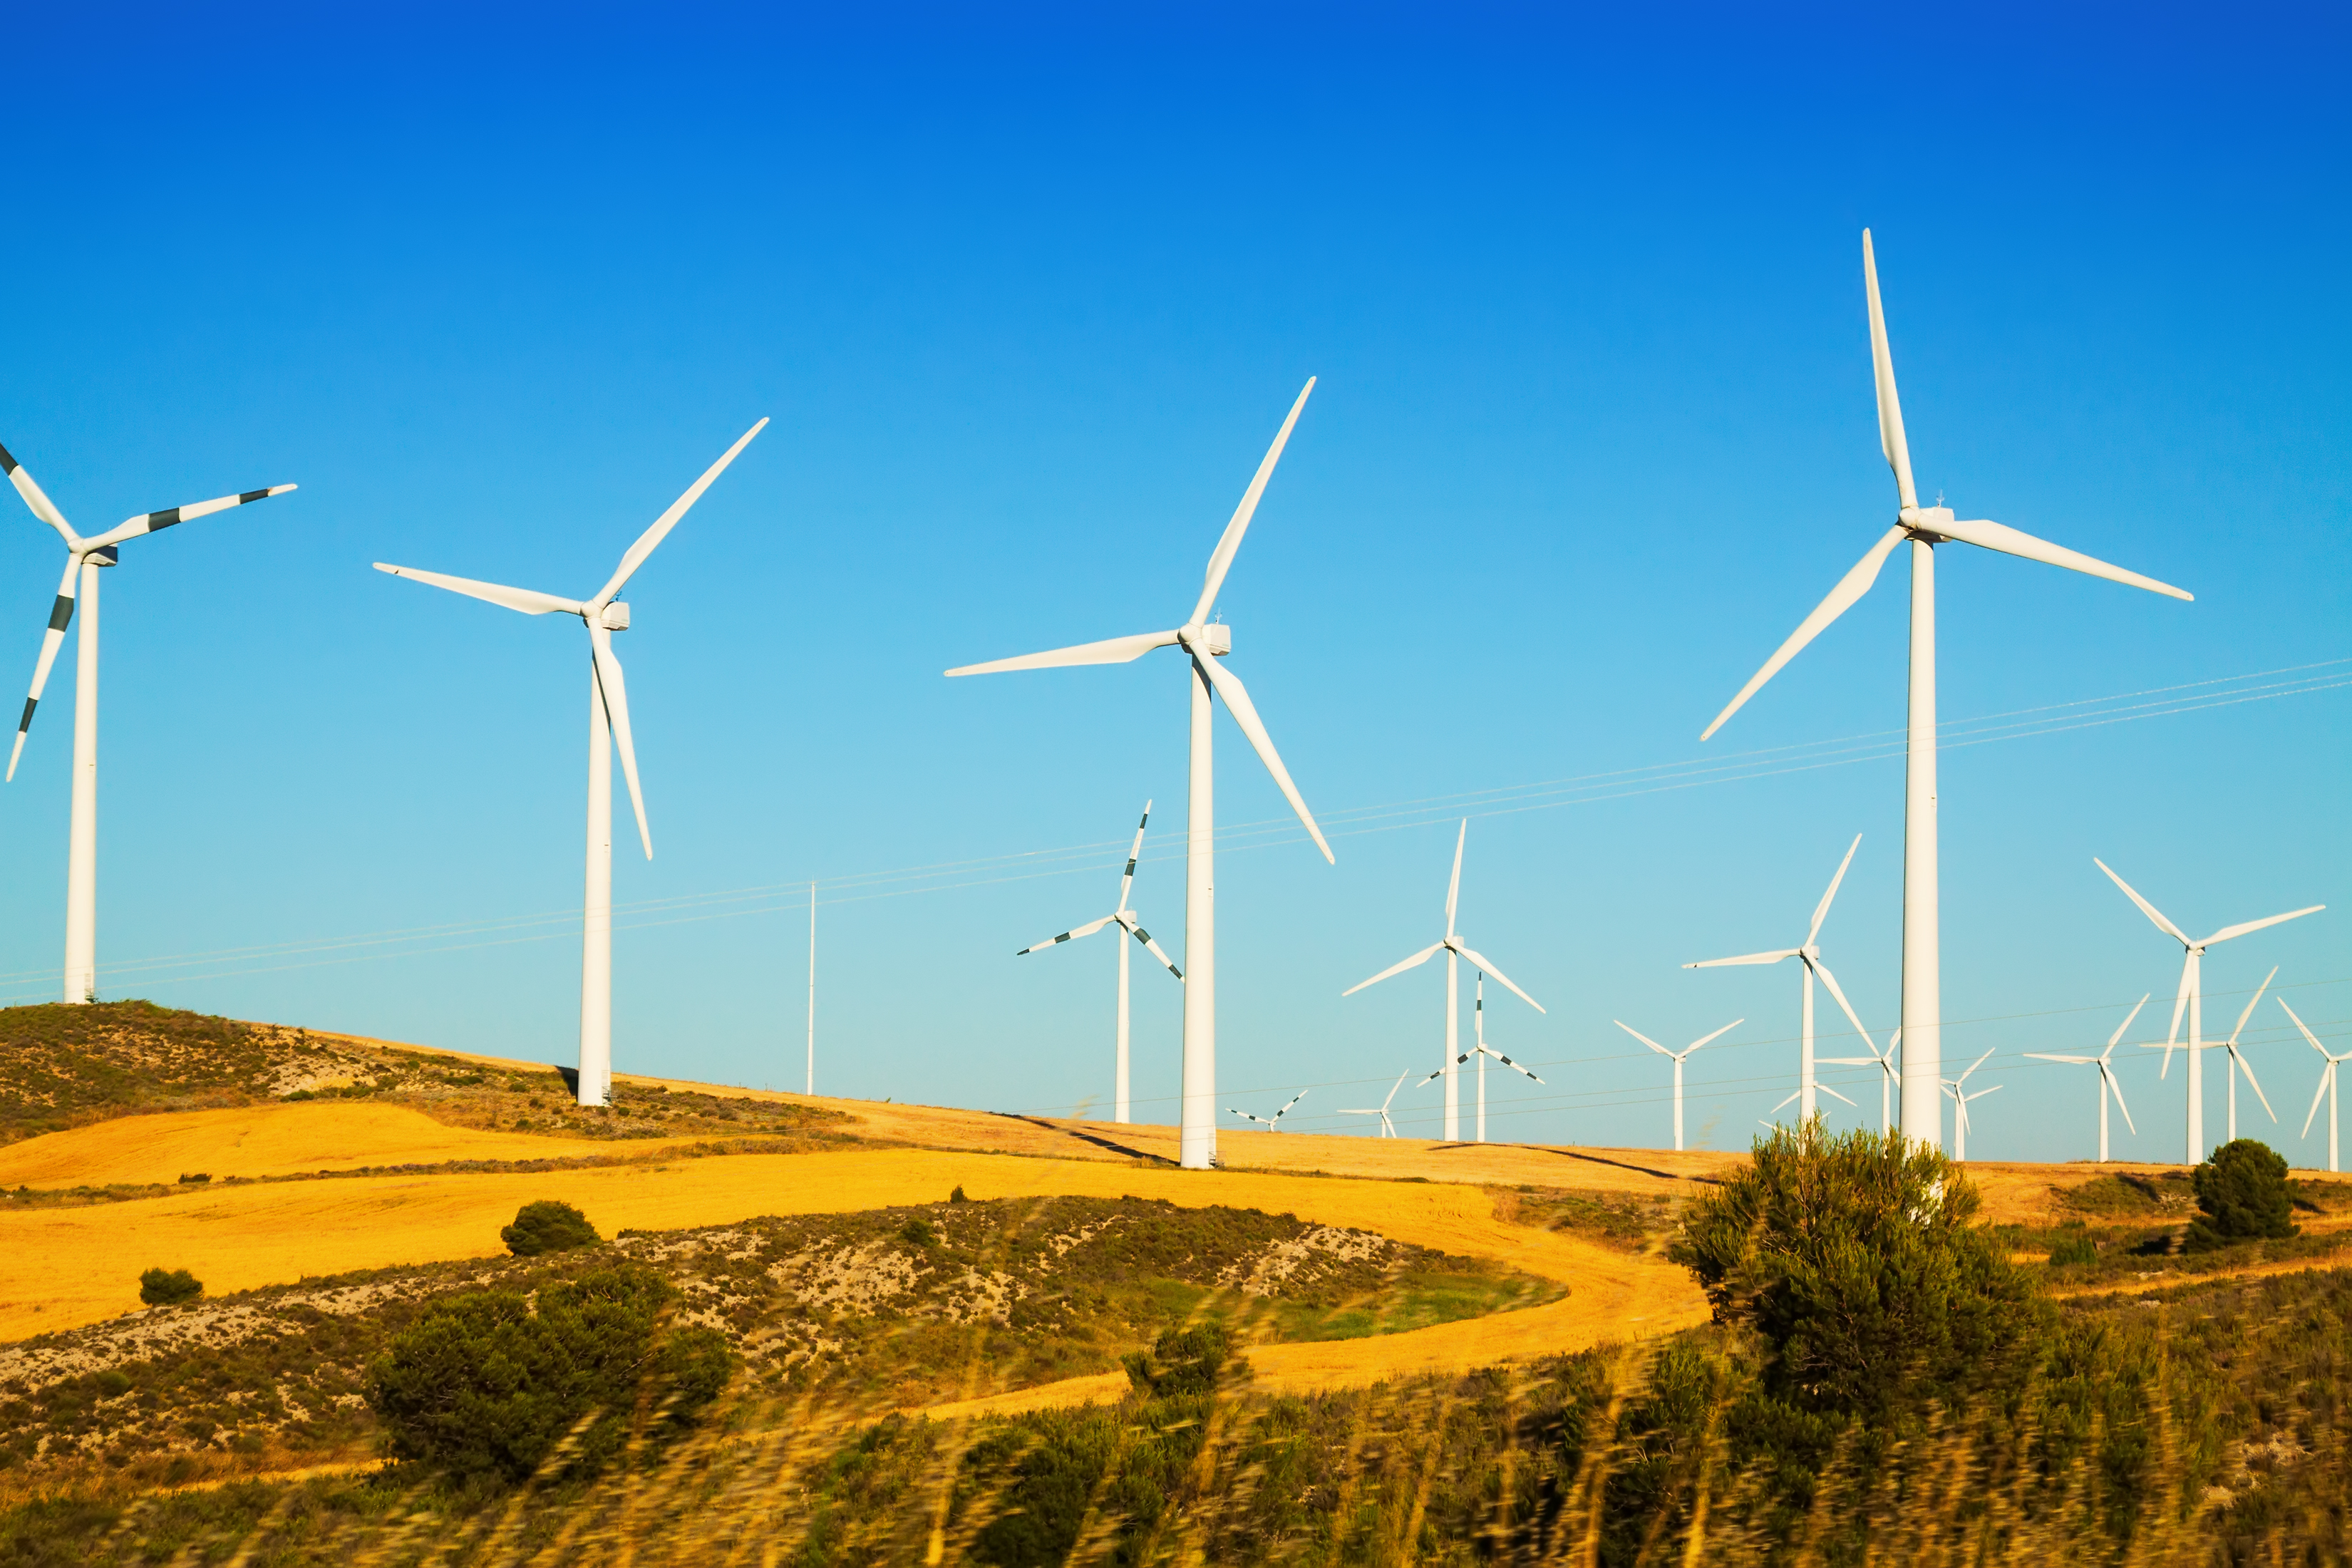 A wind farm with multiple windmills basking in the sunshine